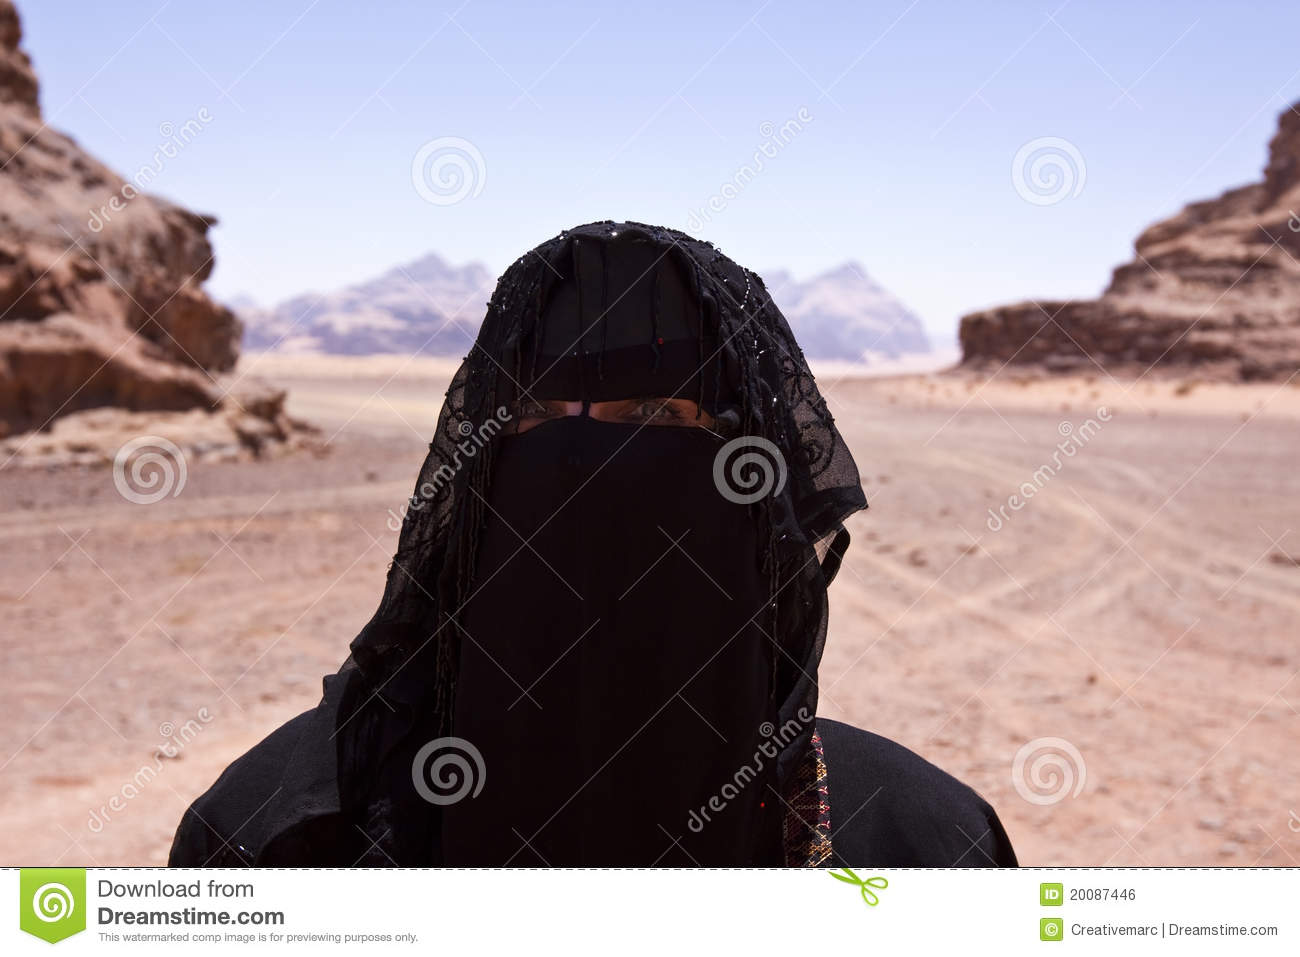 Portrait Of Bedouin Woman With Burka In Desert Royalty Free Stock.